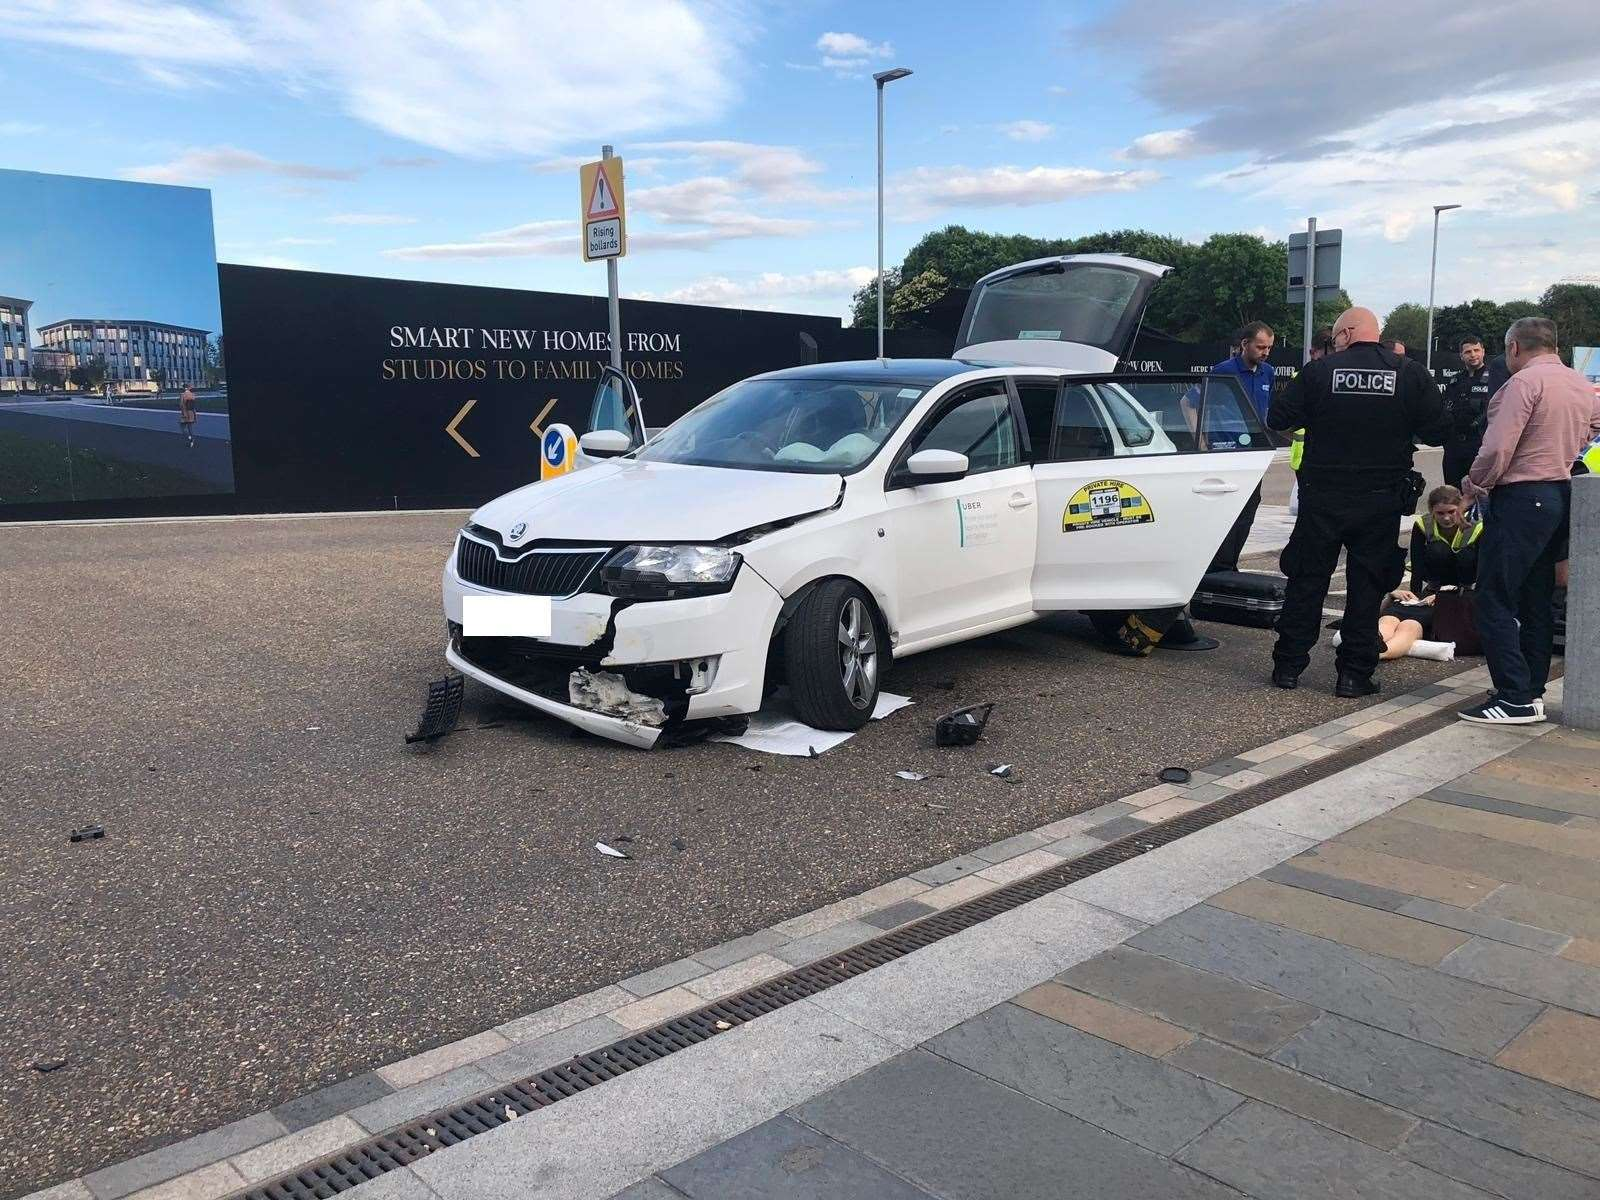 Police and onlookers at Eddington Avenue in Cambridge after Uber car collided with bollard (13731173)